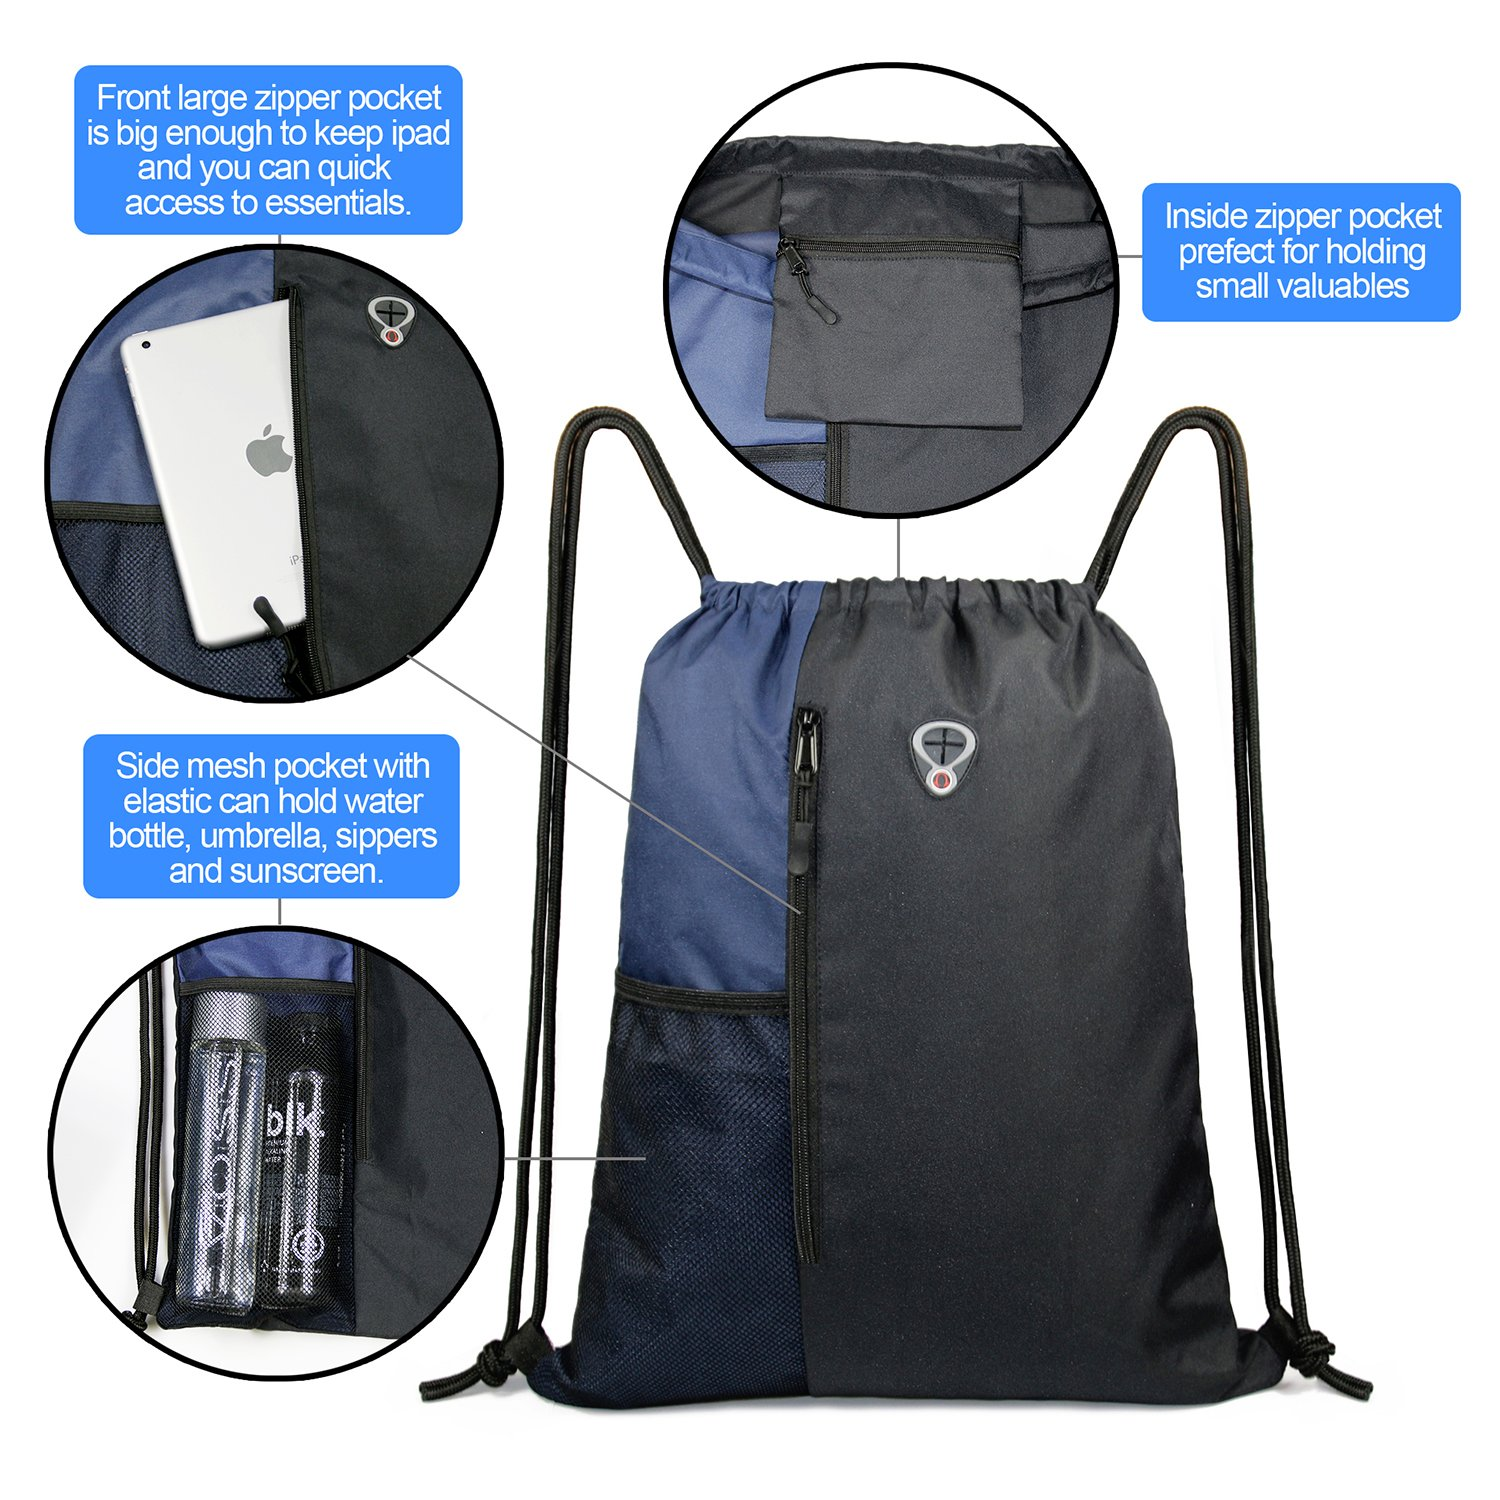 Drawstring Backpack Sports Gym Bag for Women Men Children Large Size with Zipper and Water Bottle Mesh Pockets (Black/Navy) by BeeGreen (Image #2)